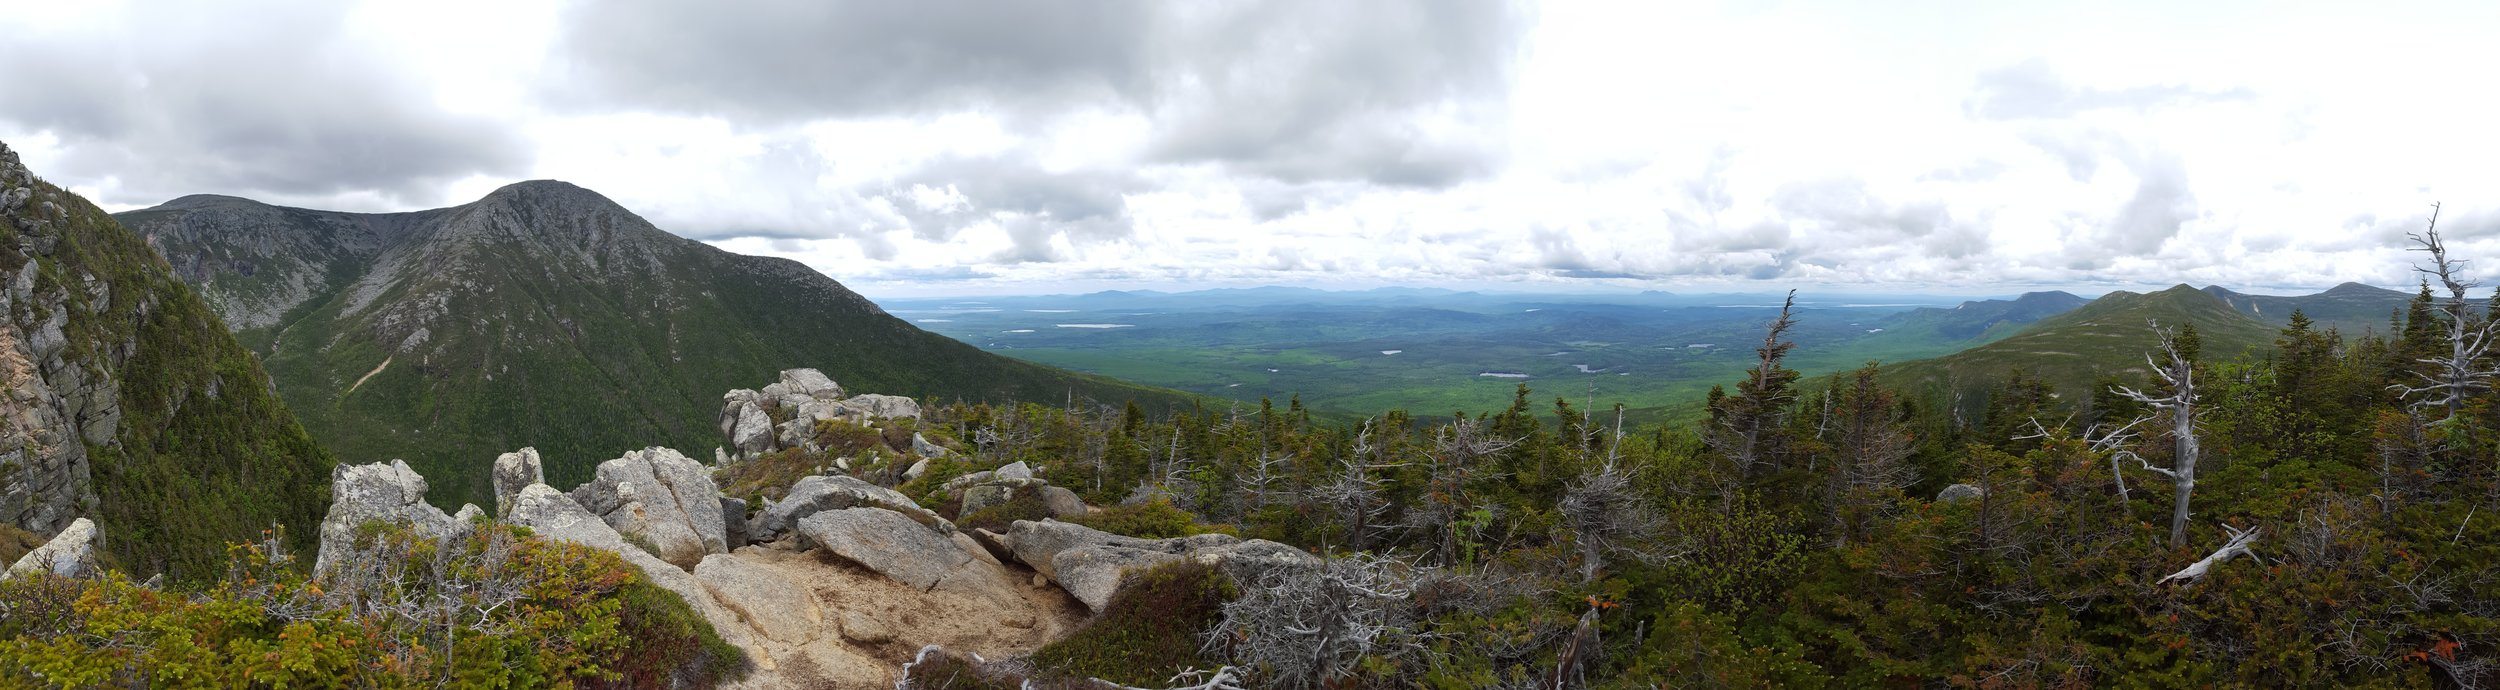 Looking south from below the summit